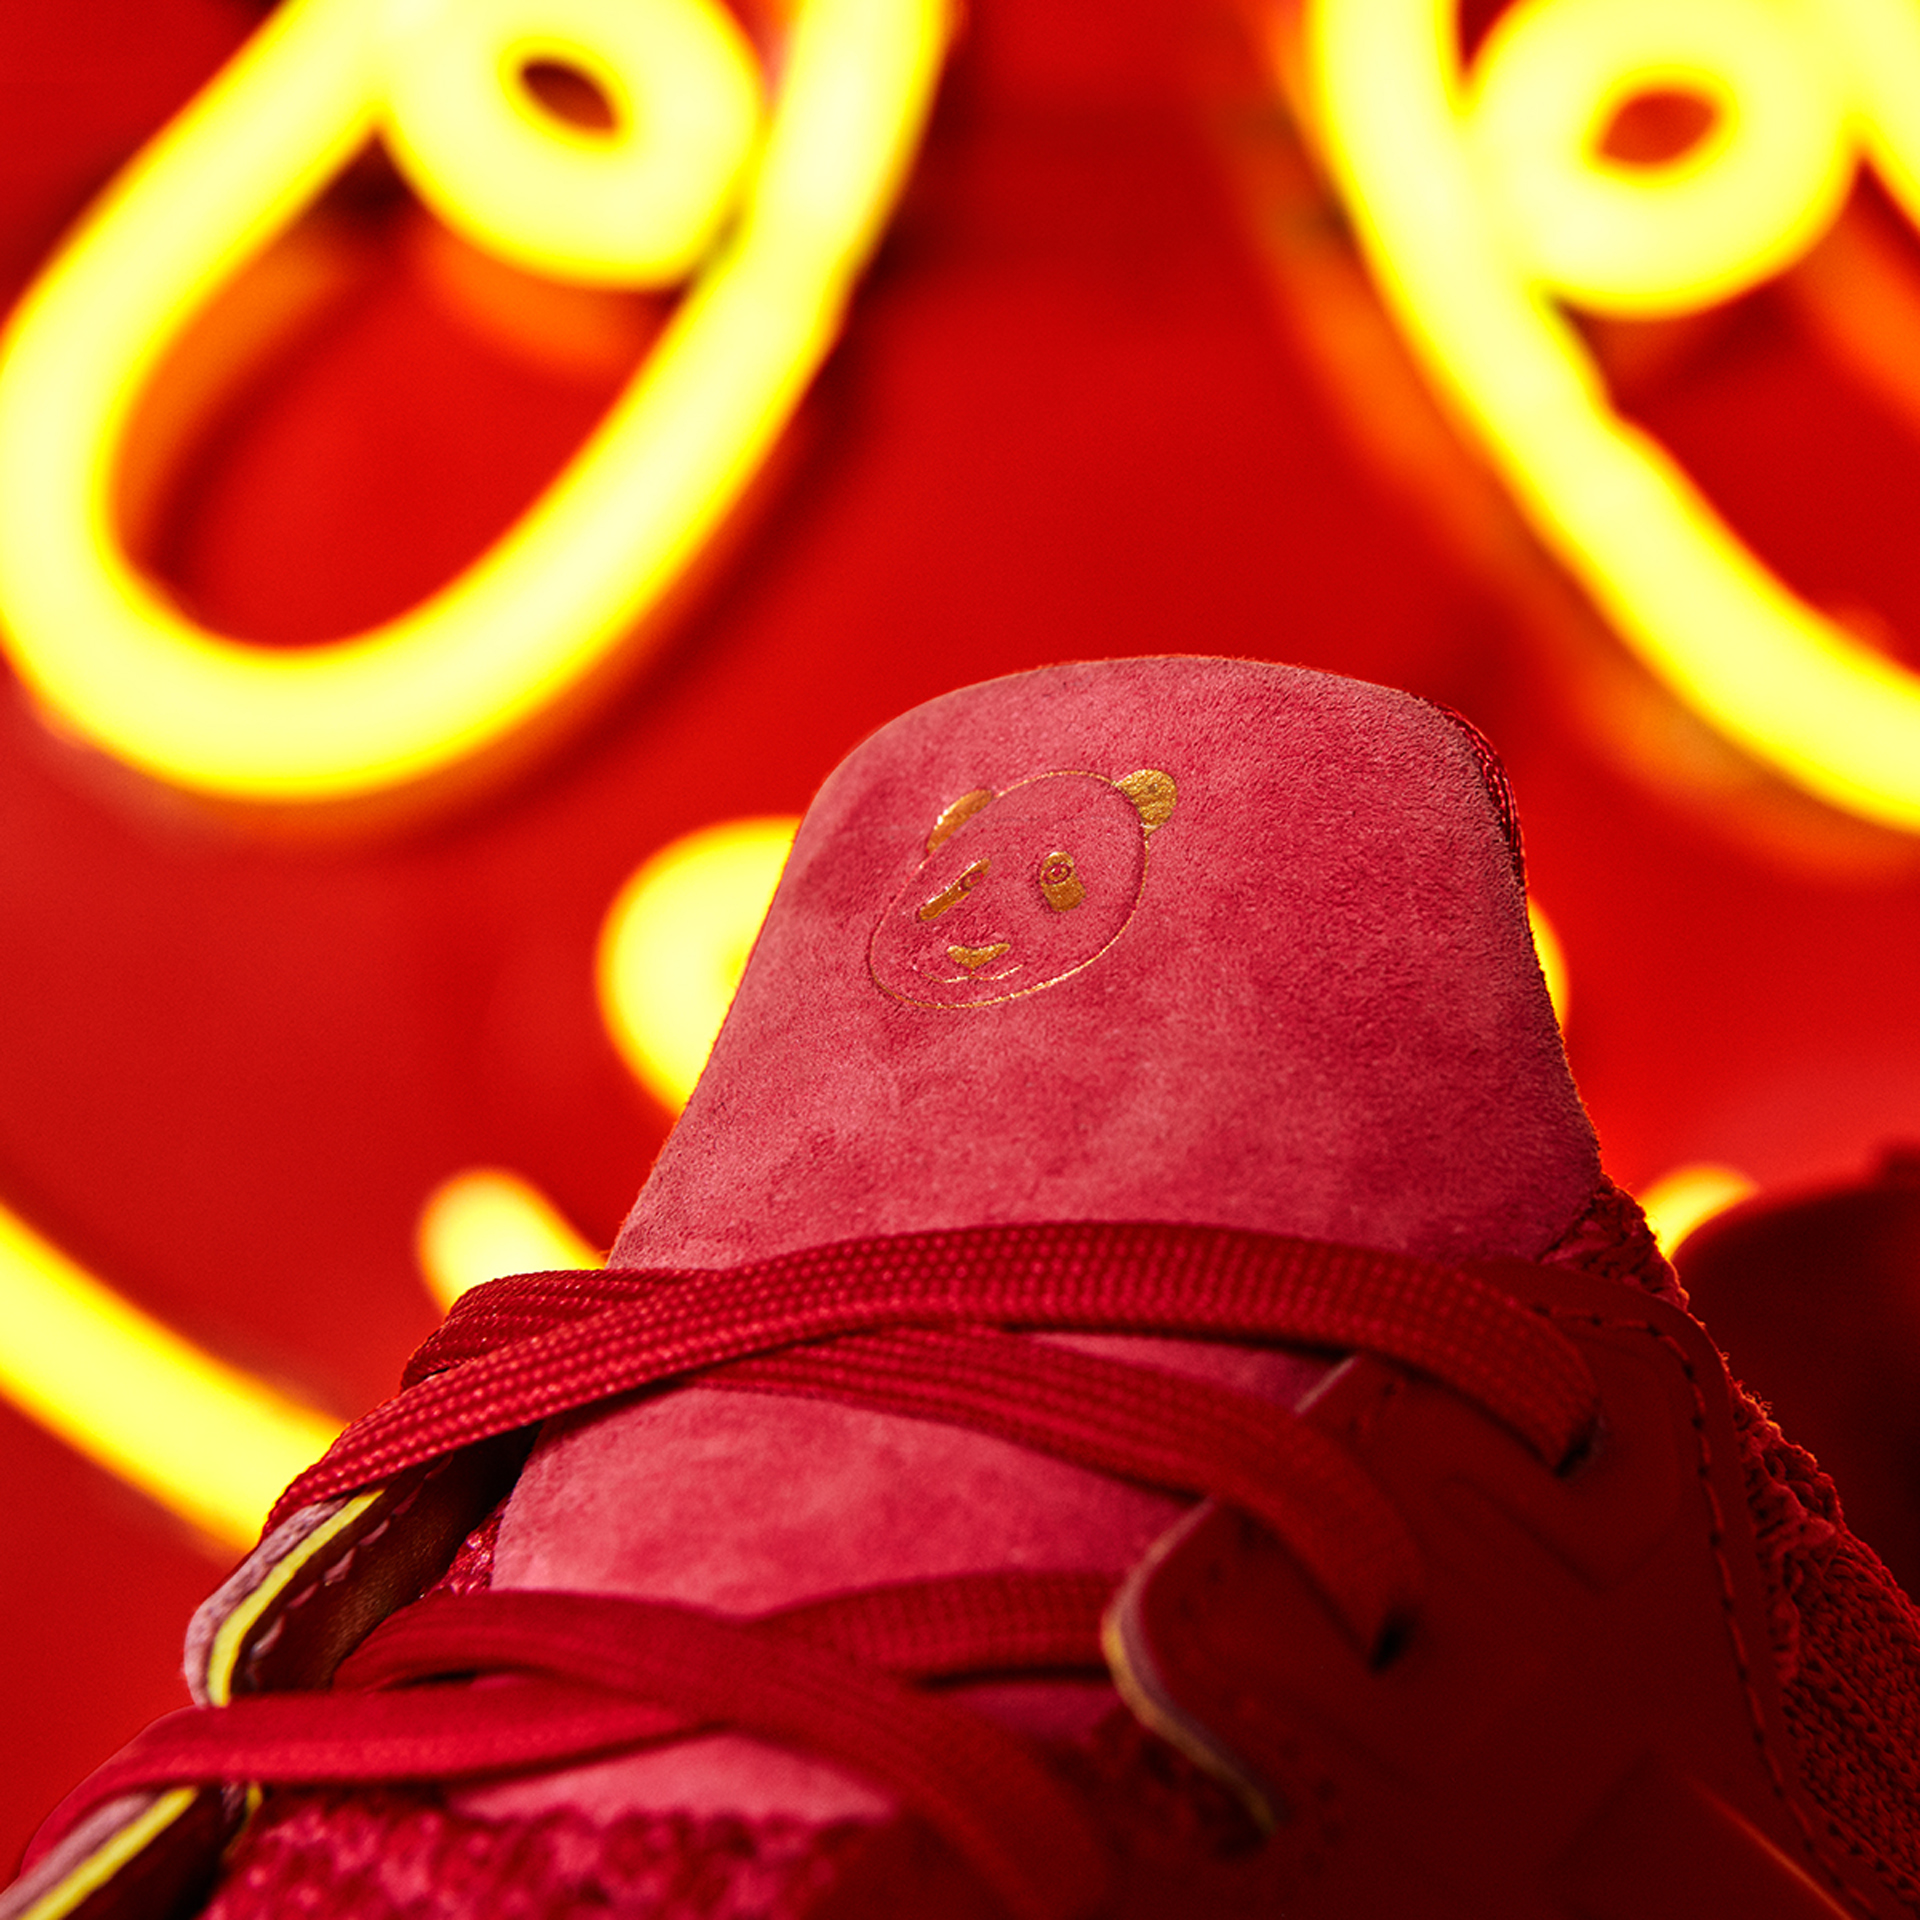 adidas Unveils the Chinese New Year themed Ultraboost